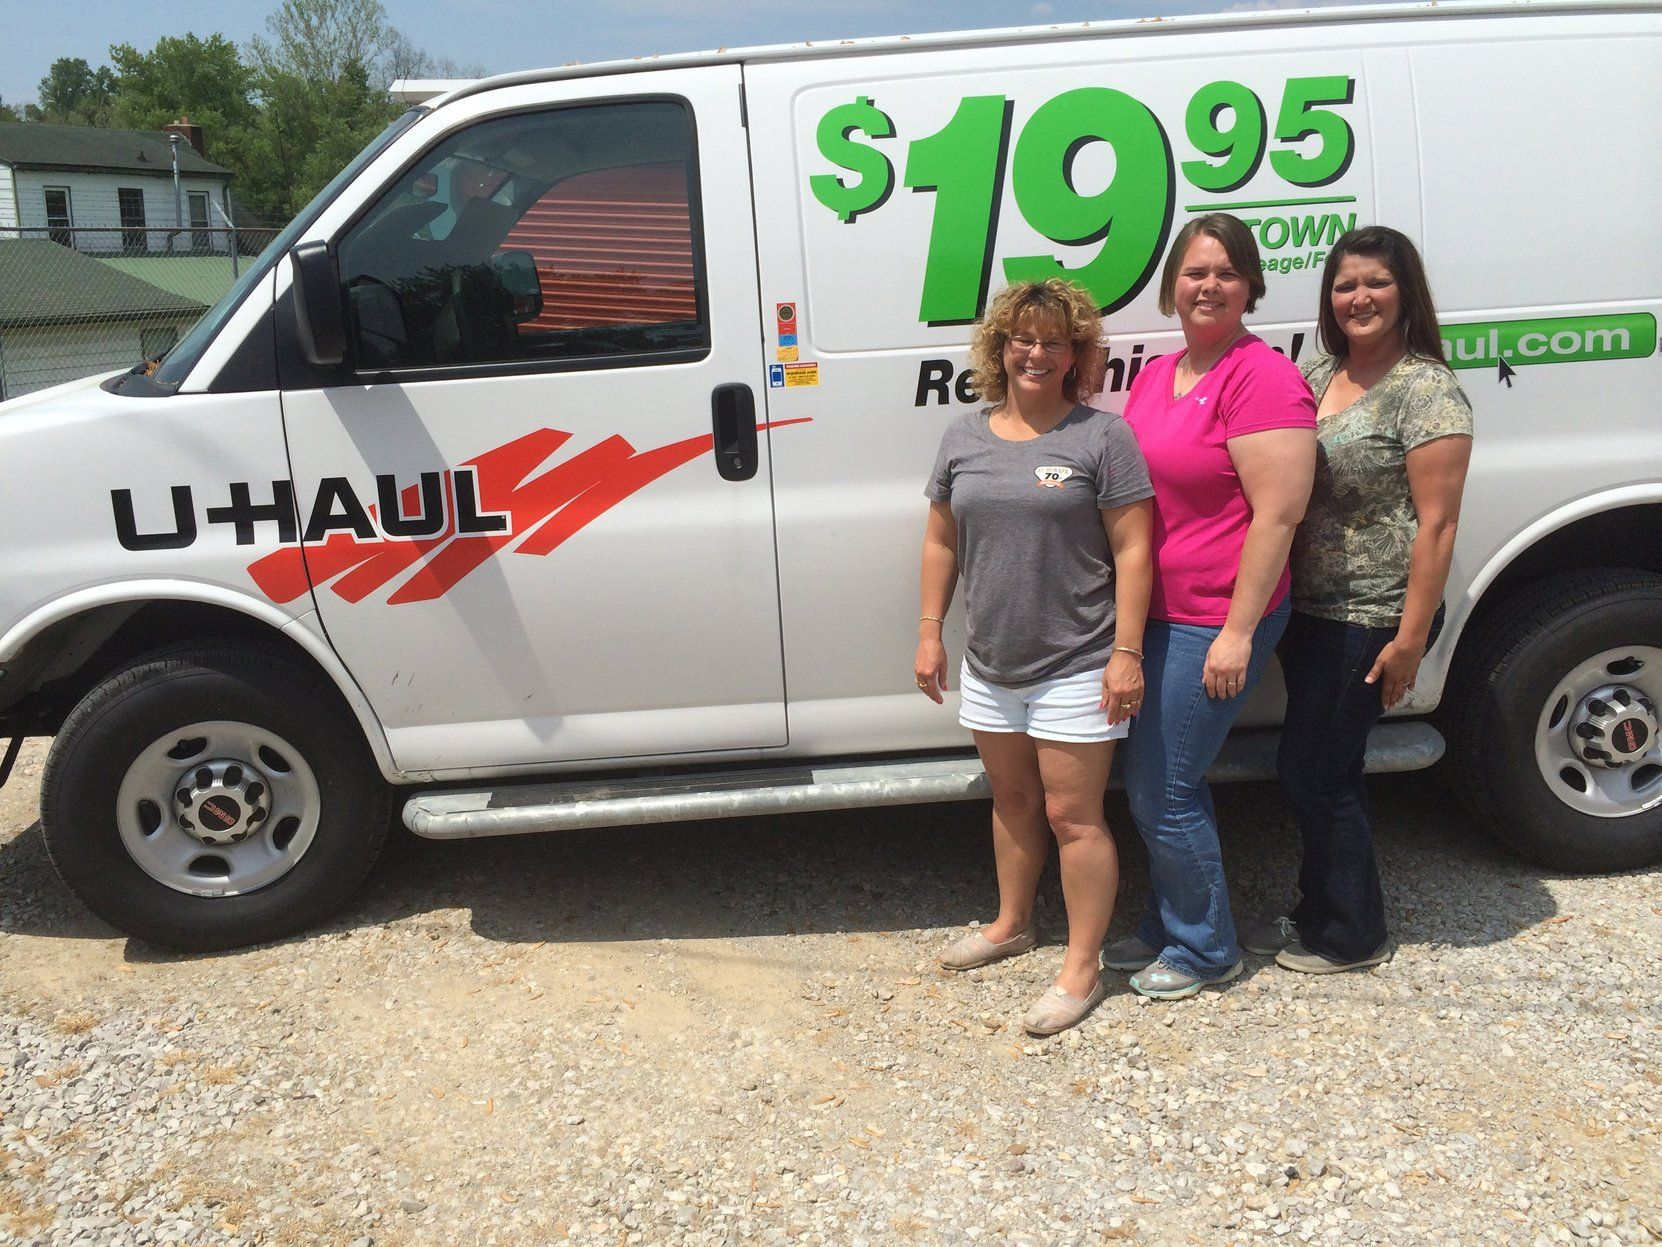 South Point Storage And U Haul Named To Top 100 Dealerships In North  America | Ohio News | Herald Dispatch.com